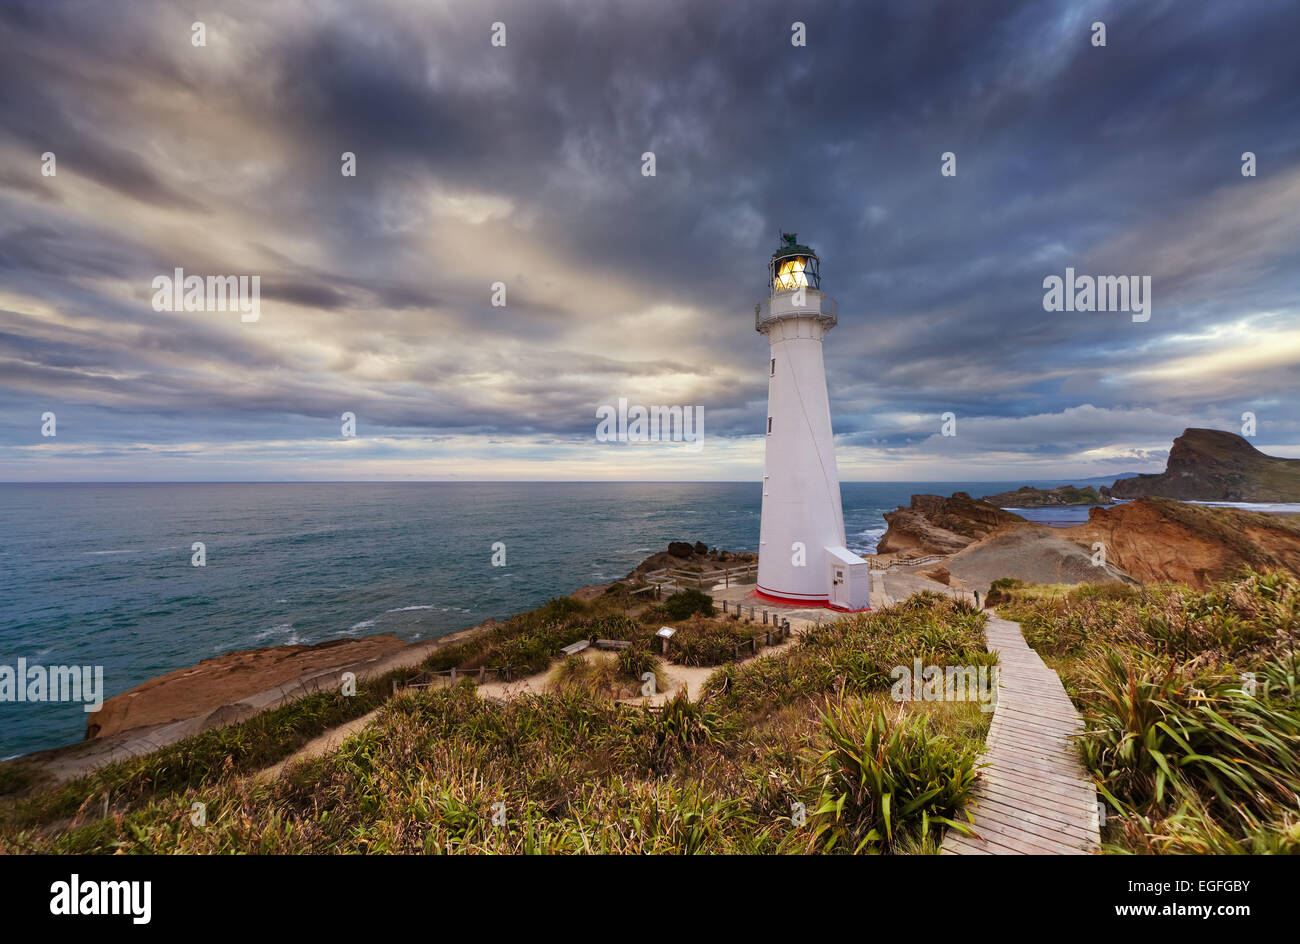 Castle Point Lighthouse bei Sonnenaufgang, Wairarapa Neuseeland Stockbild